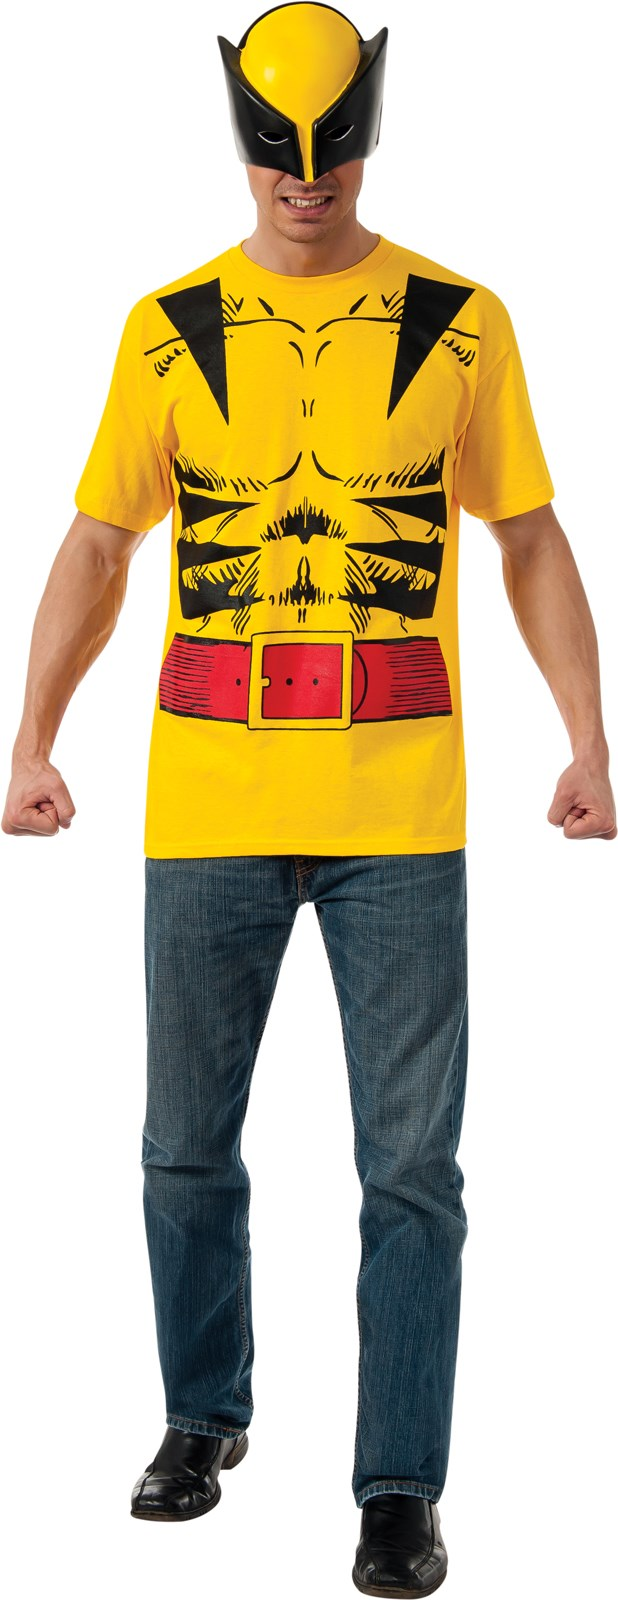 Marvel Comics - X-Men Wolverine T-Shirt Kit